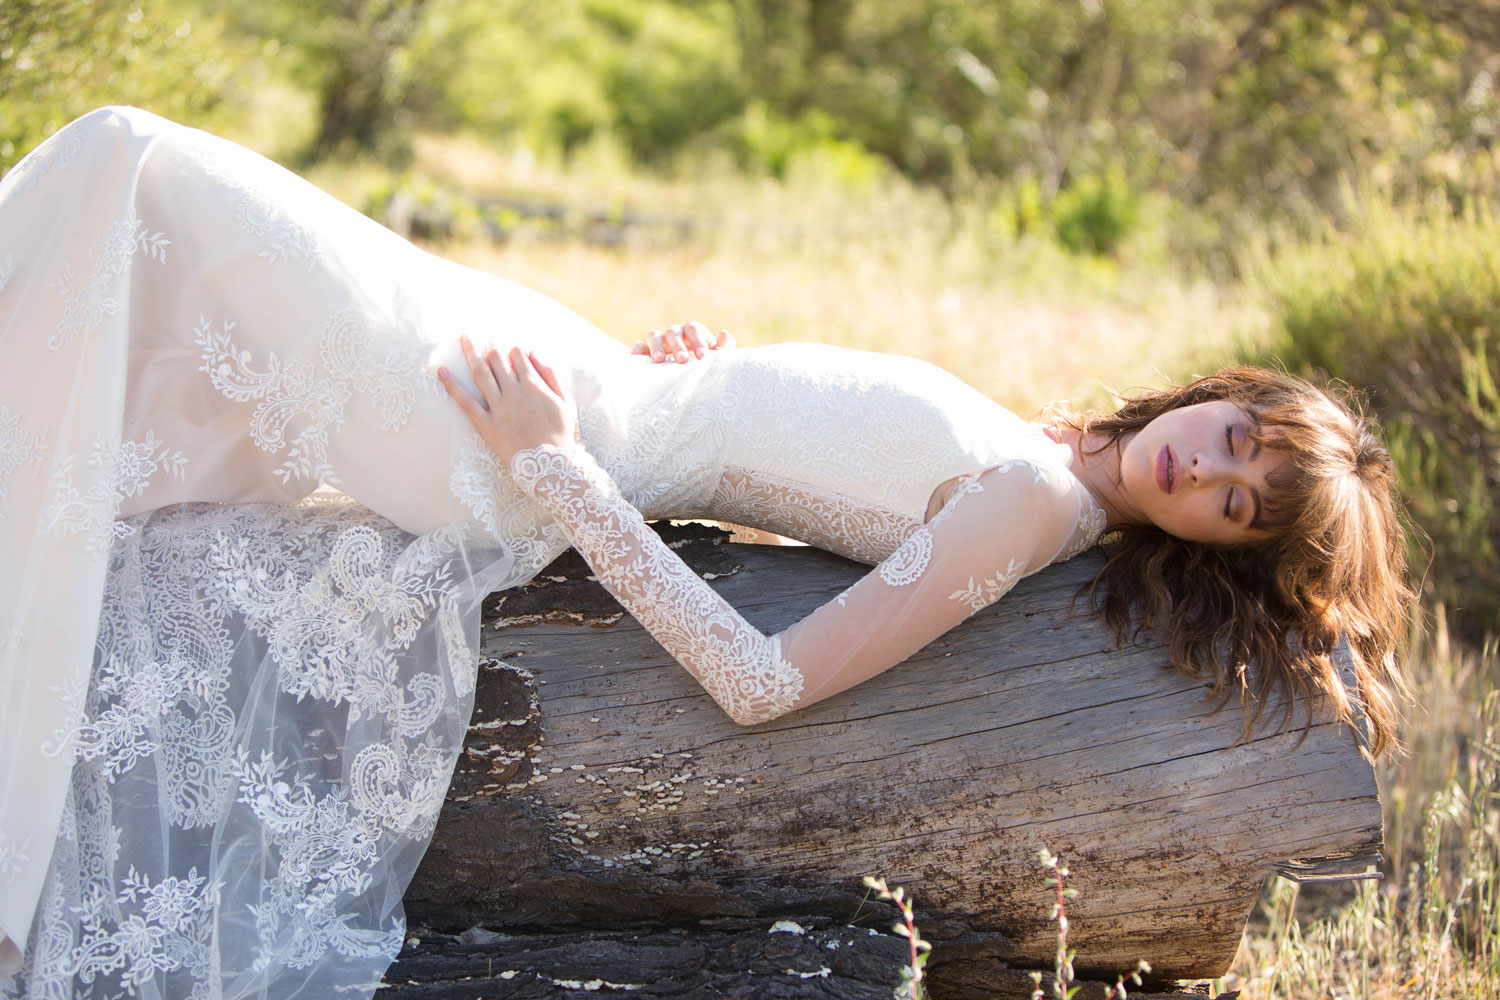 Claire Pettibone Romantique stylized shoot in Malibu California Dreamin' collection Pasadena wedding dress